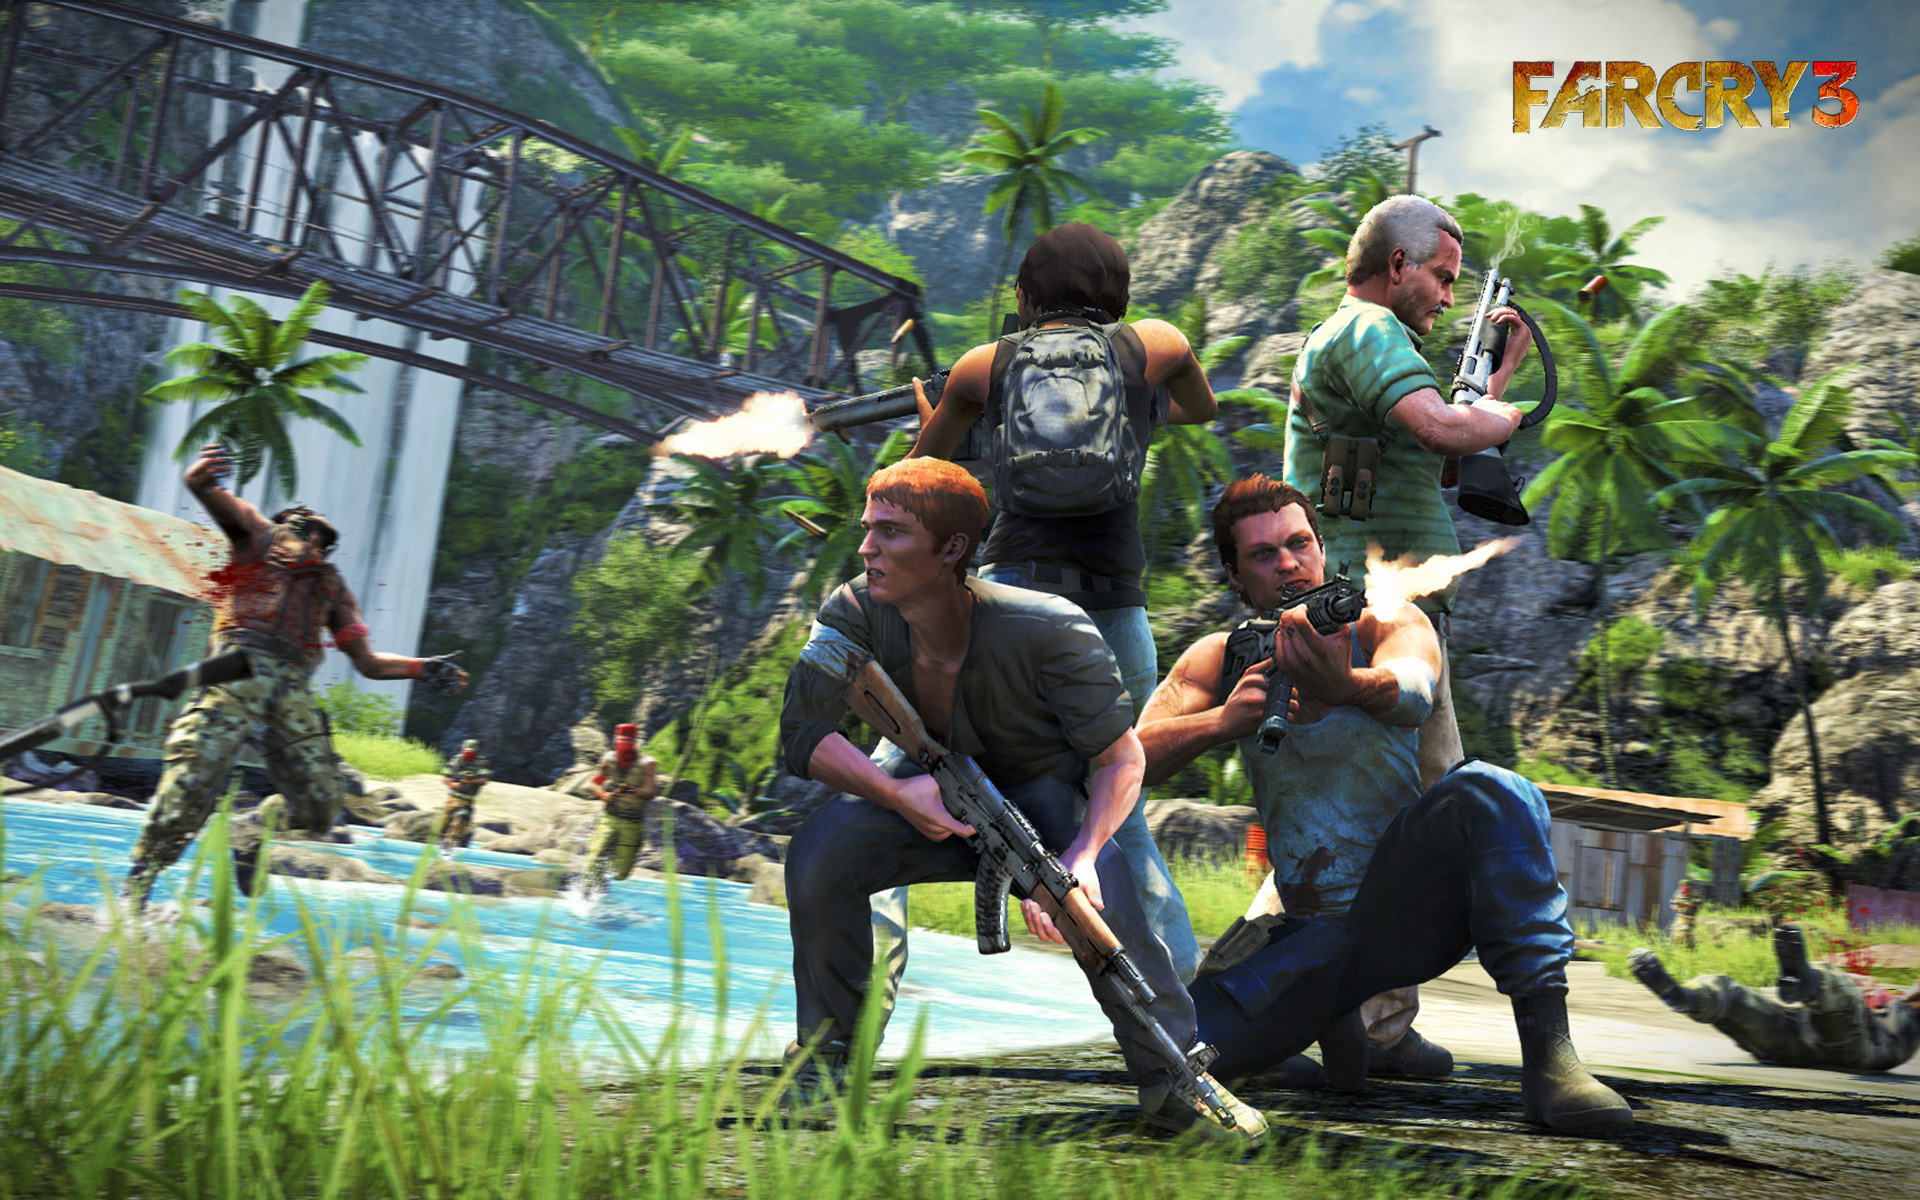 far cry 3 full hd fondo de pantalla and fondo de